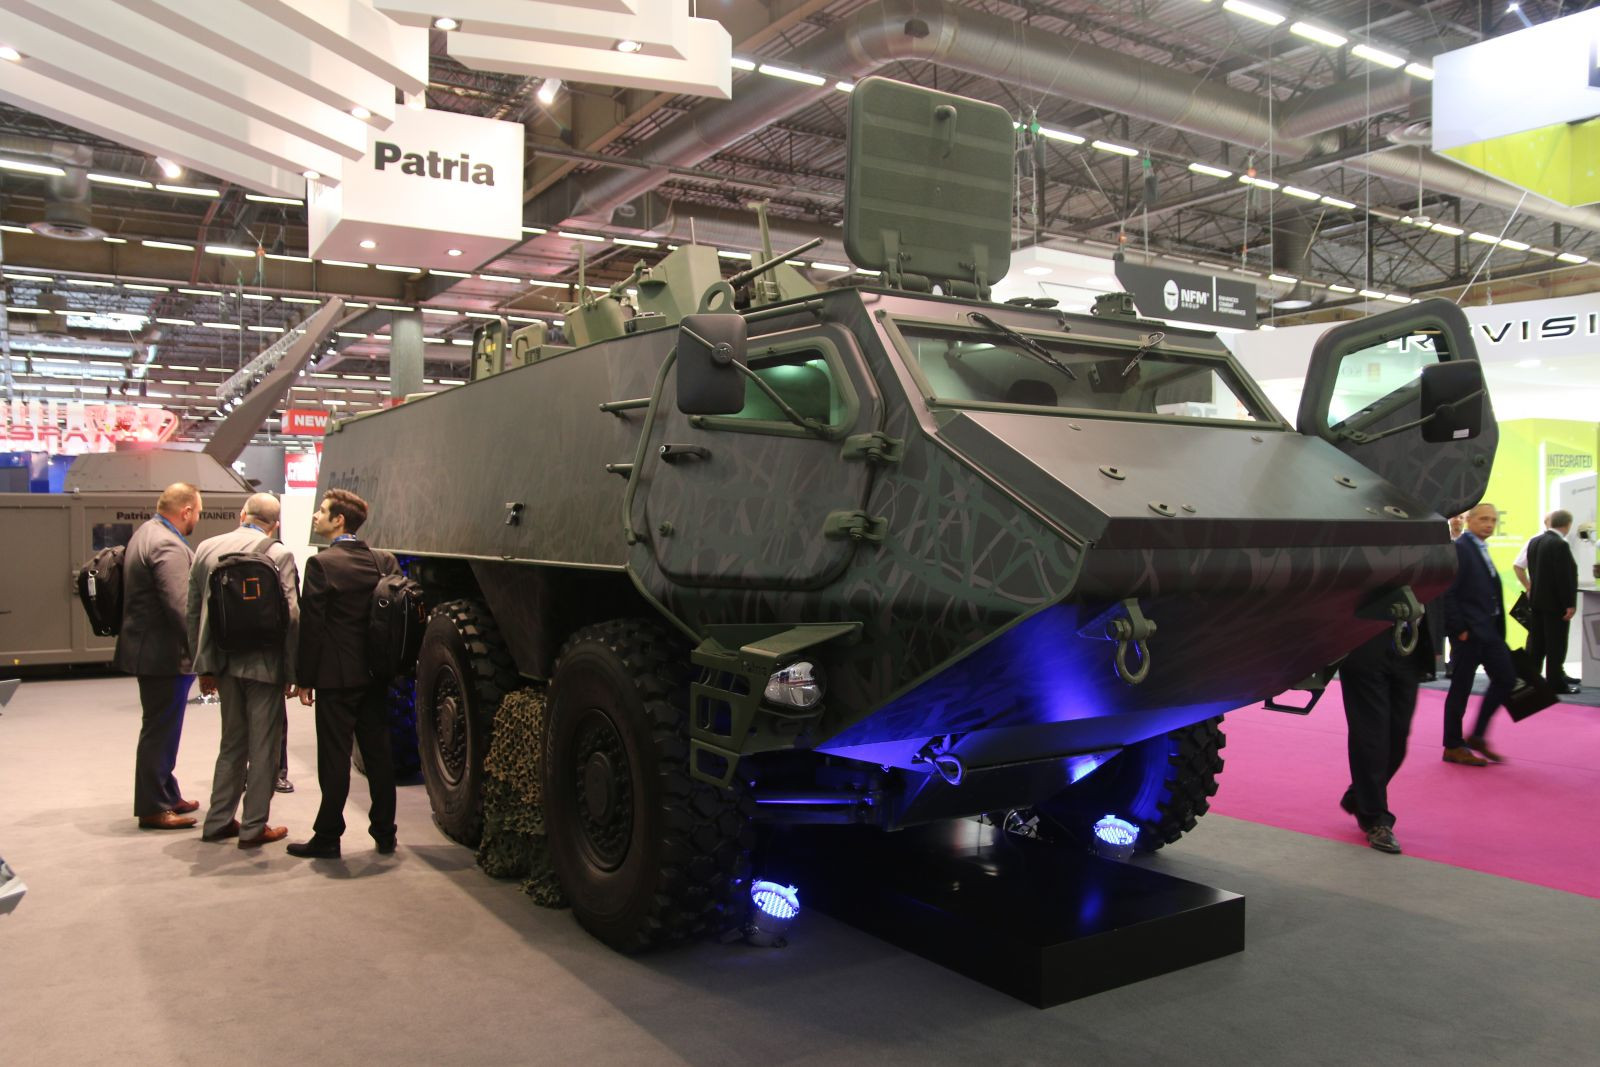 Finland and Latvia ordered the first 200 6×6 armored vehicles from Homeland for 200 million